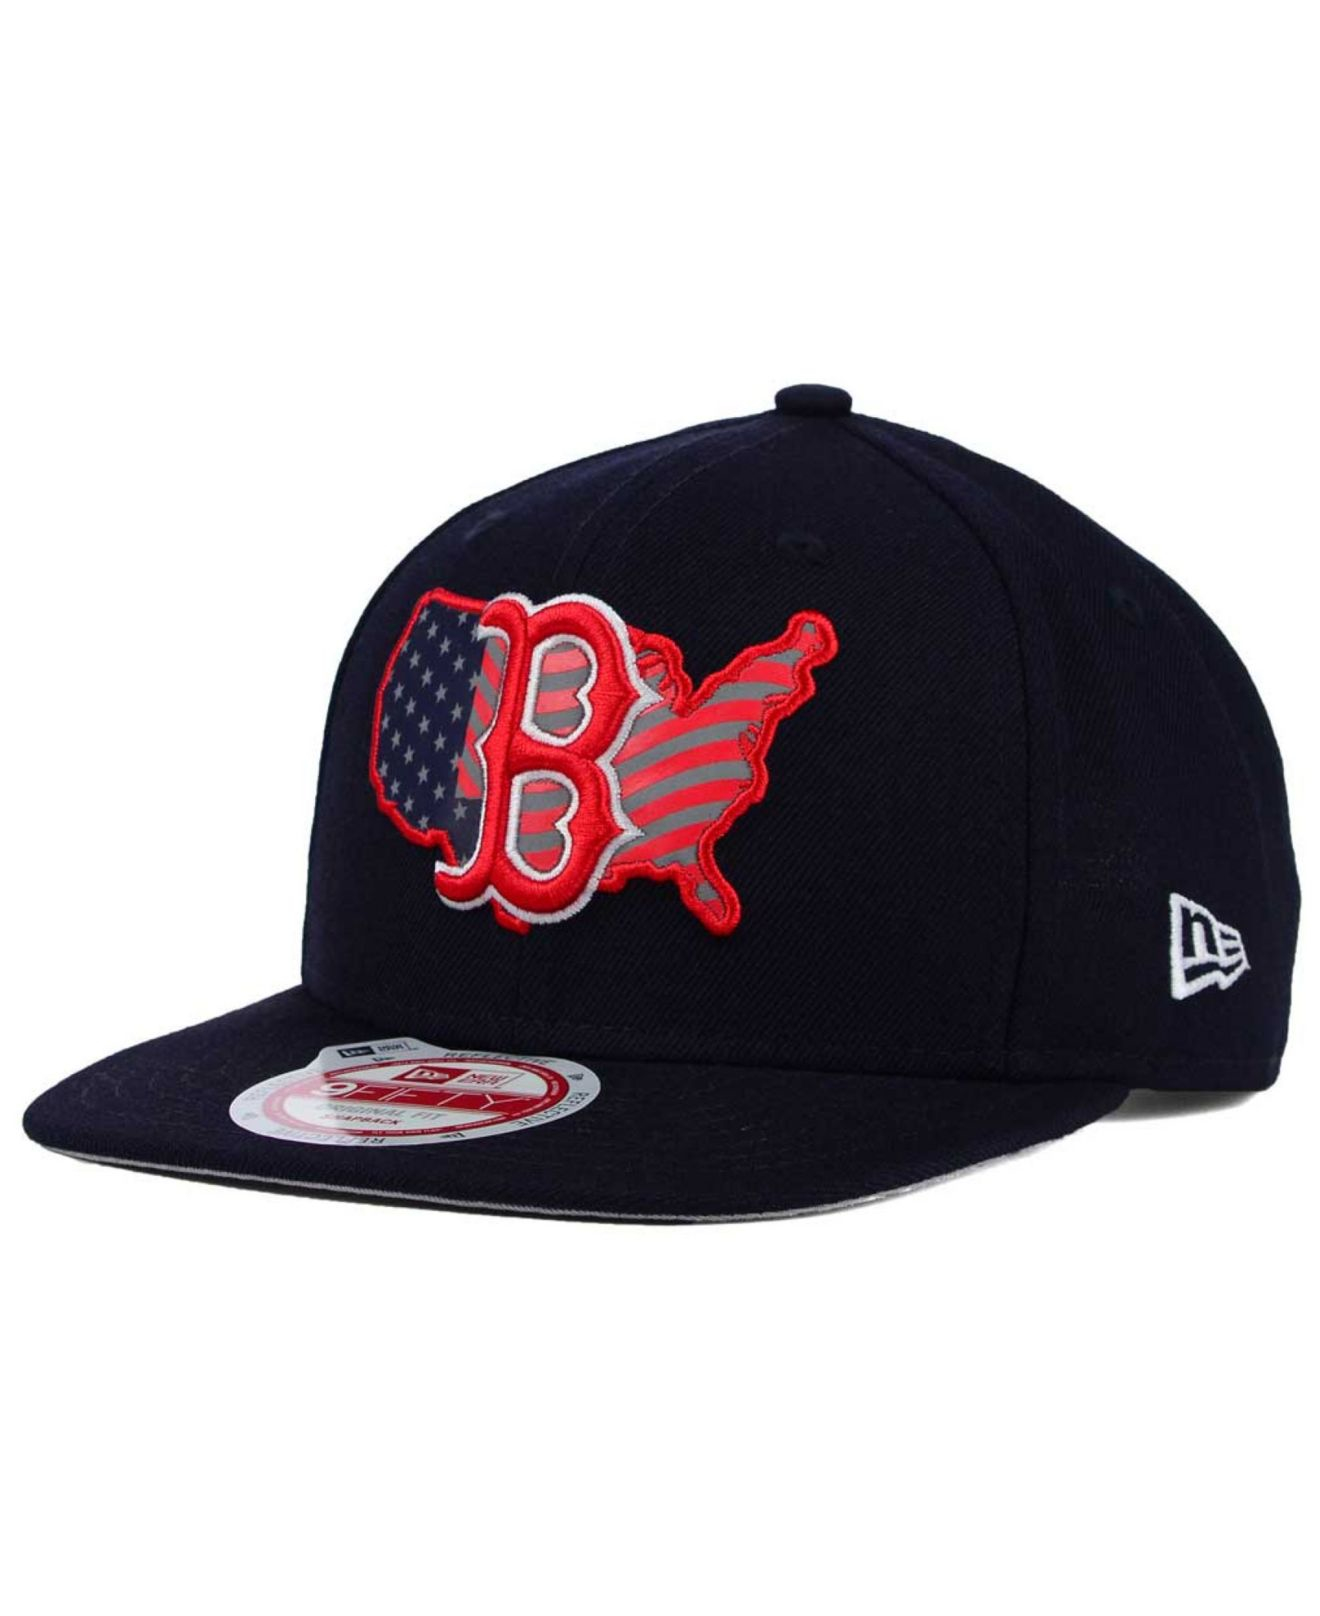 new arrival 2431f 7f018 ... release date lyst ktz boston red sox usa reflective 9fifty snapback cap  in blue f0dae 75883